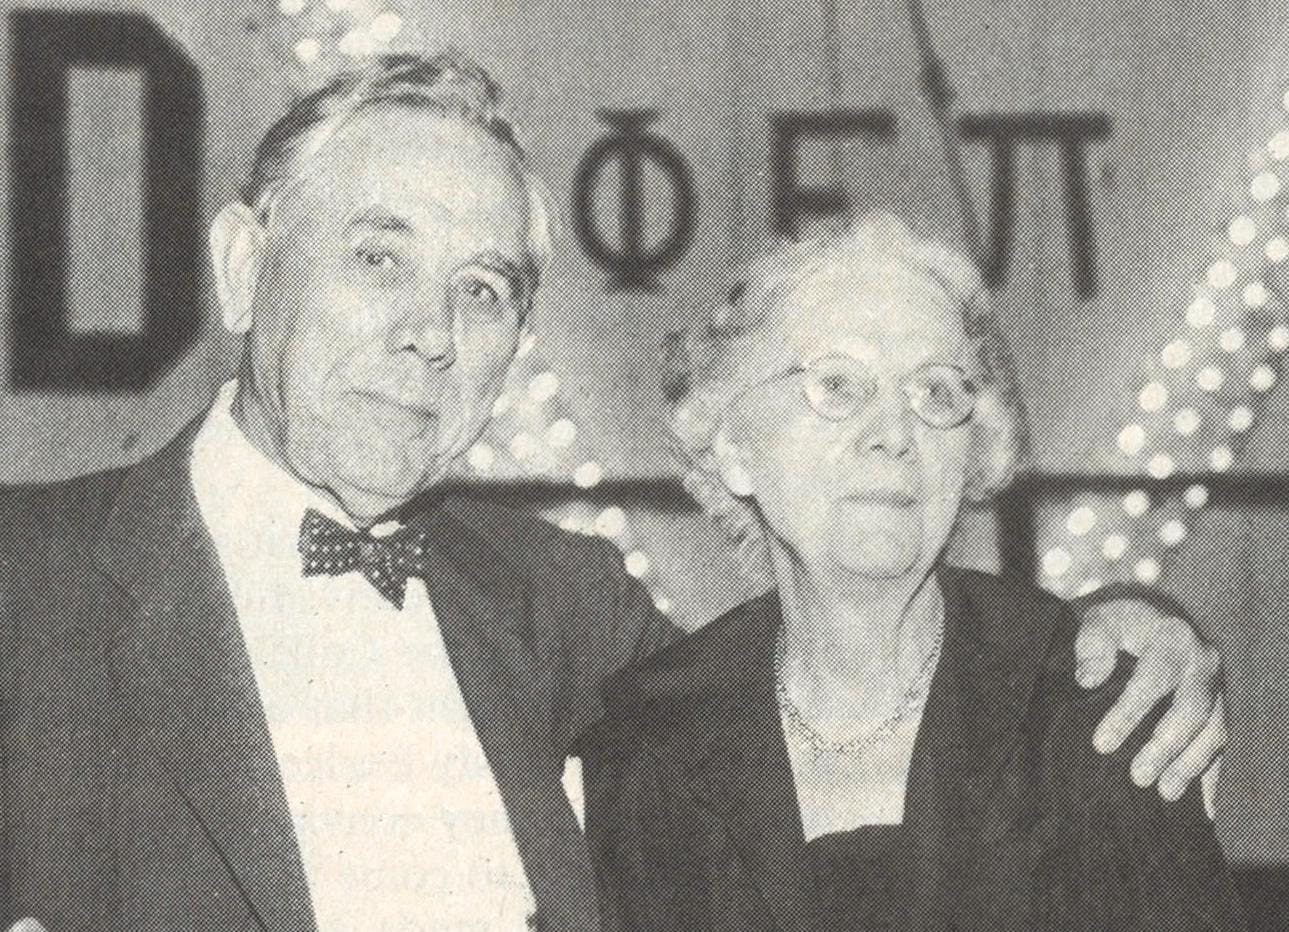 Baron Ricky's grandparents, Hugh Roy and Lillie Cullen.